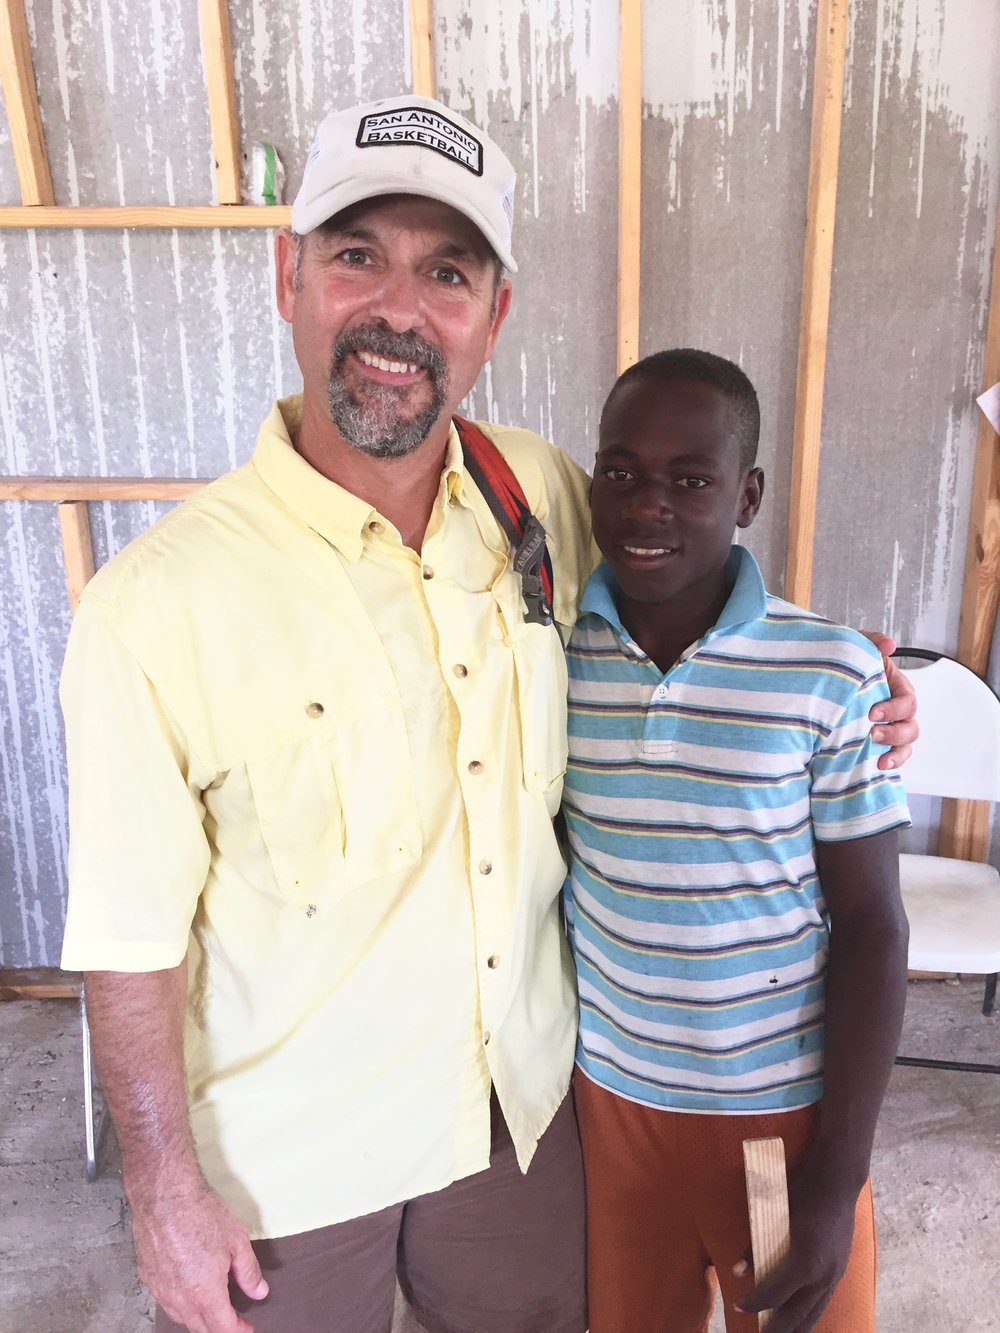 Delecsan attends Green Church Number 1. We've played with he & his brothers at our VBS programs for the last few years. He's growing into a sweet young man who helps Pastor Noel around the church property.